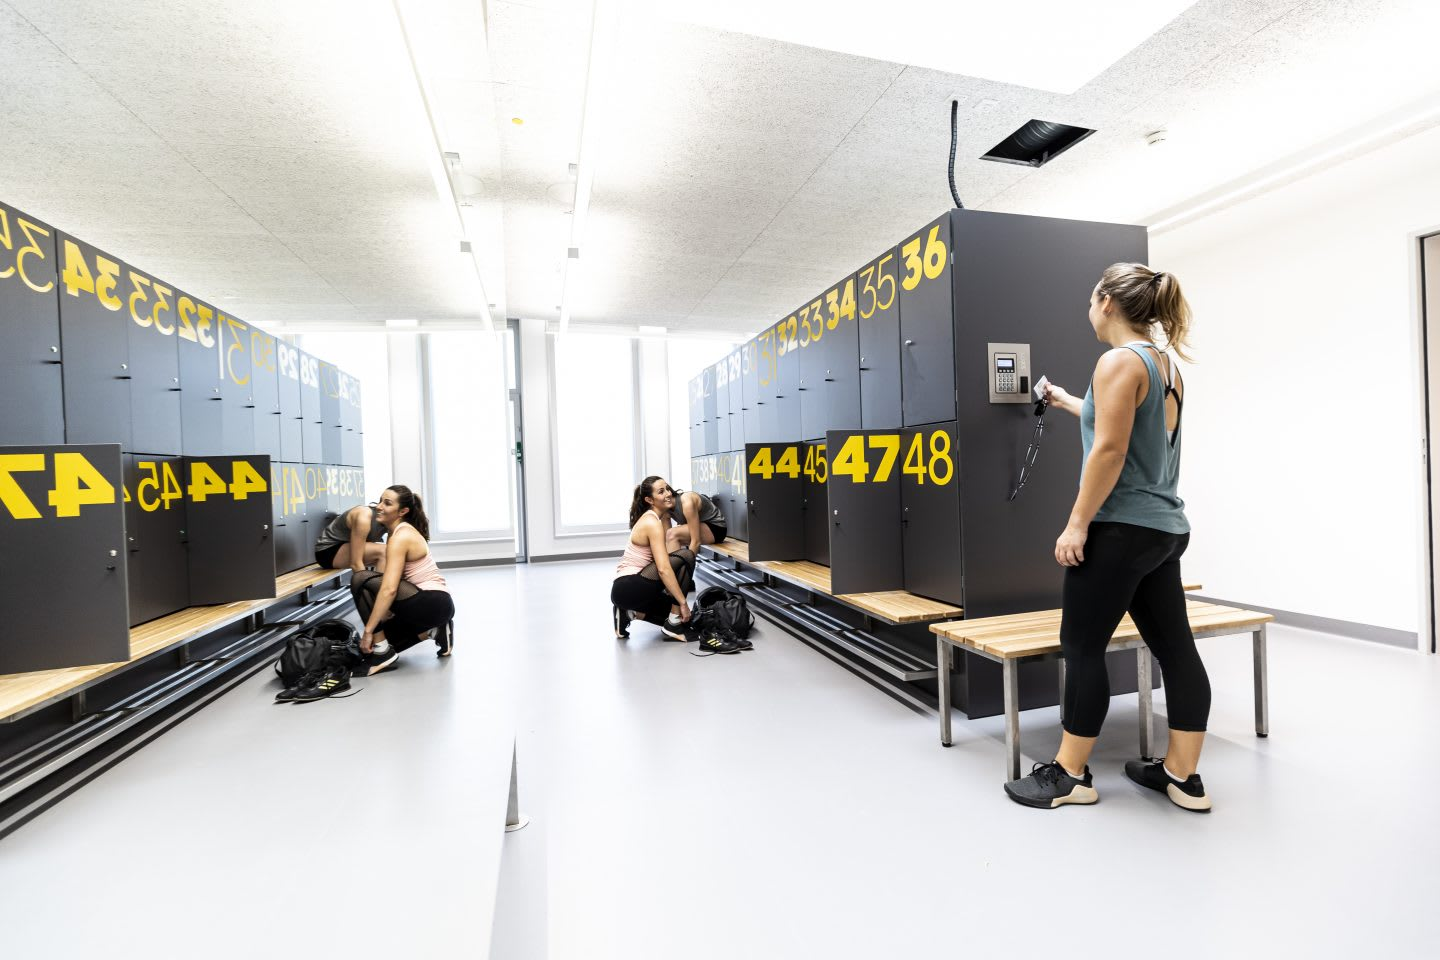 Women using locker room a gym, GYM, Herzogenaurach, adidas, employees, workplace, fitness. sports, culture, active, health, lifestyle